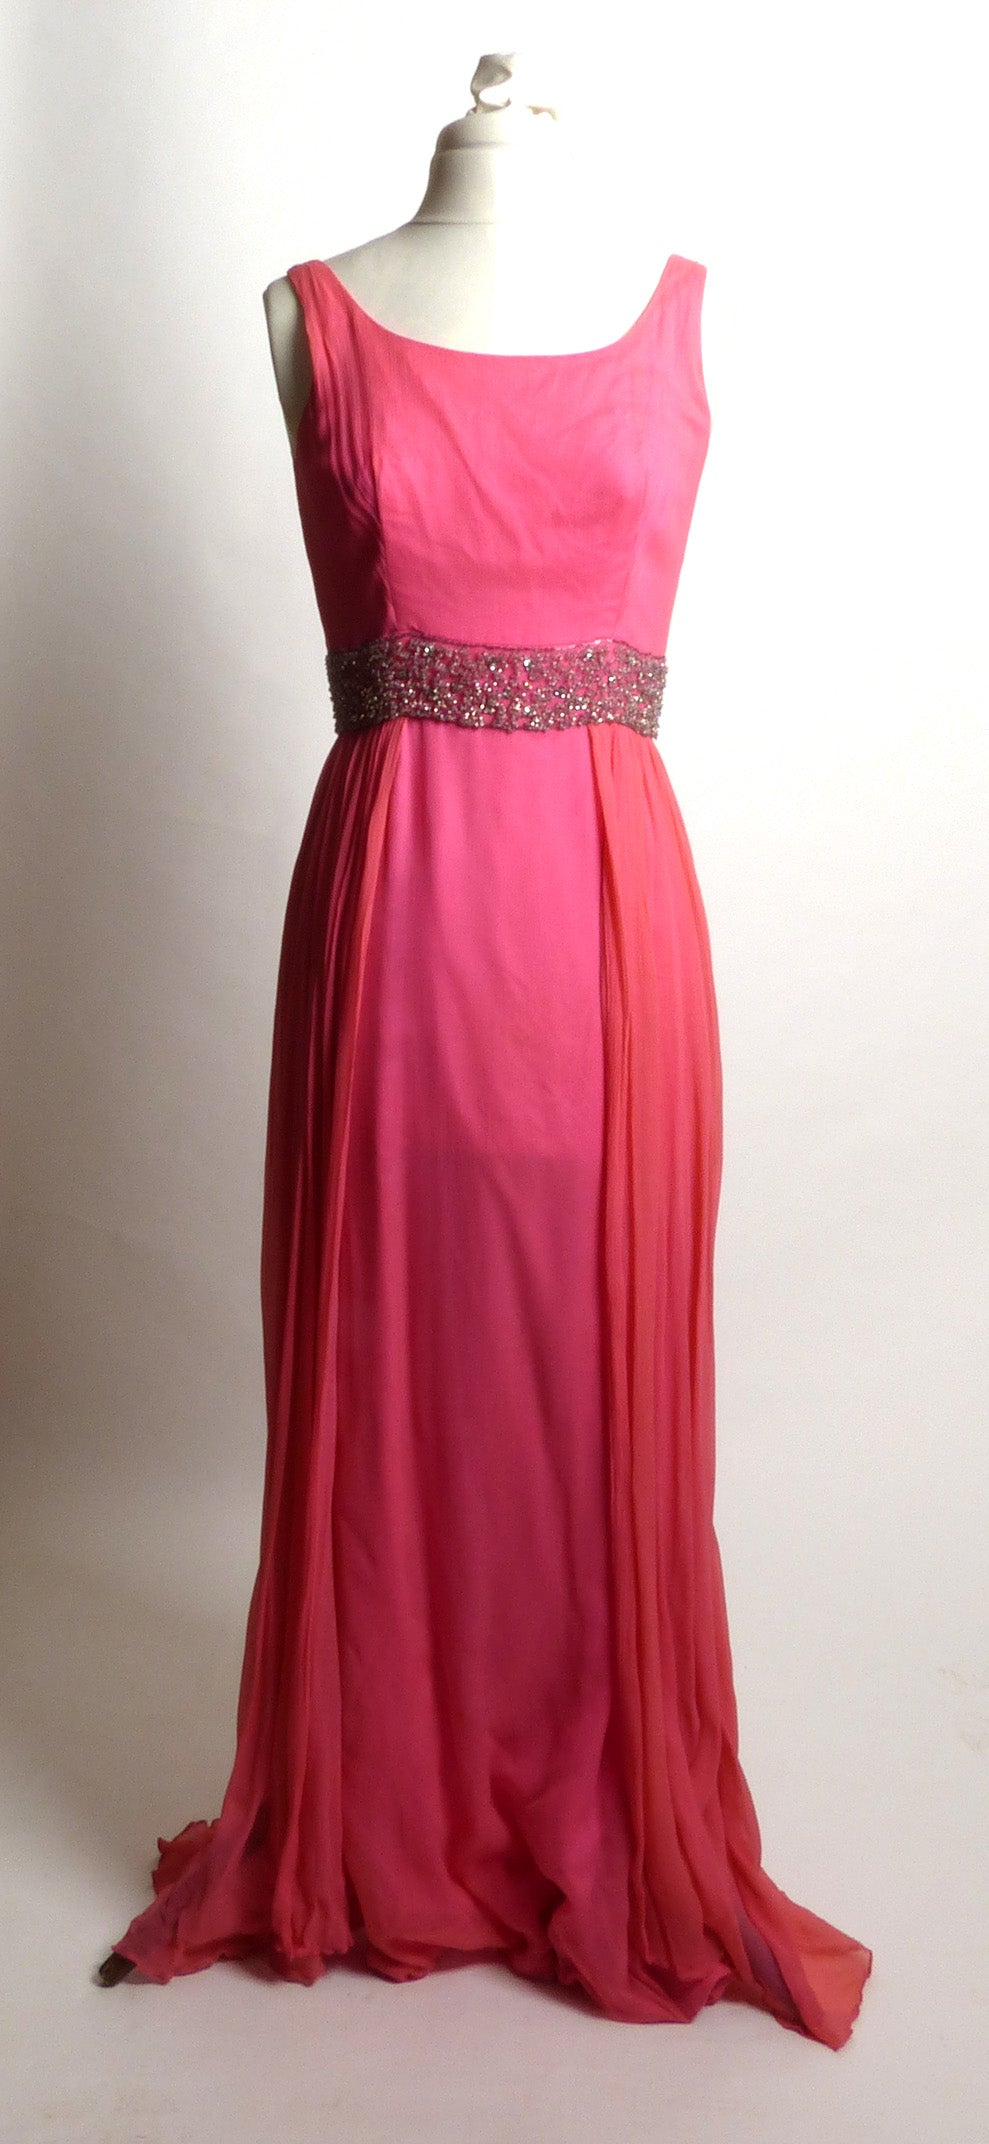 Circa 1960s Mardi Gras Pink Evening Gown with Rhinestone Waistline